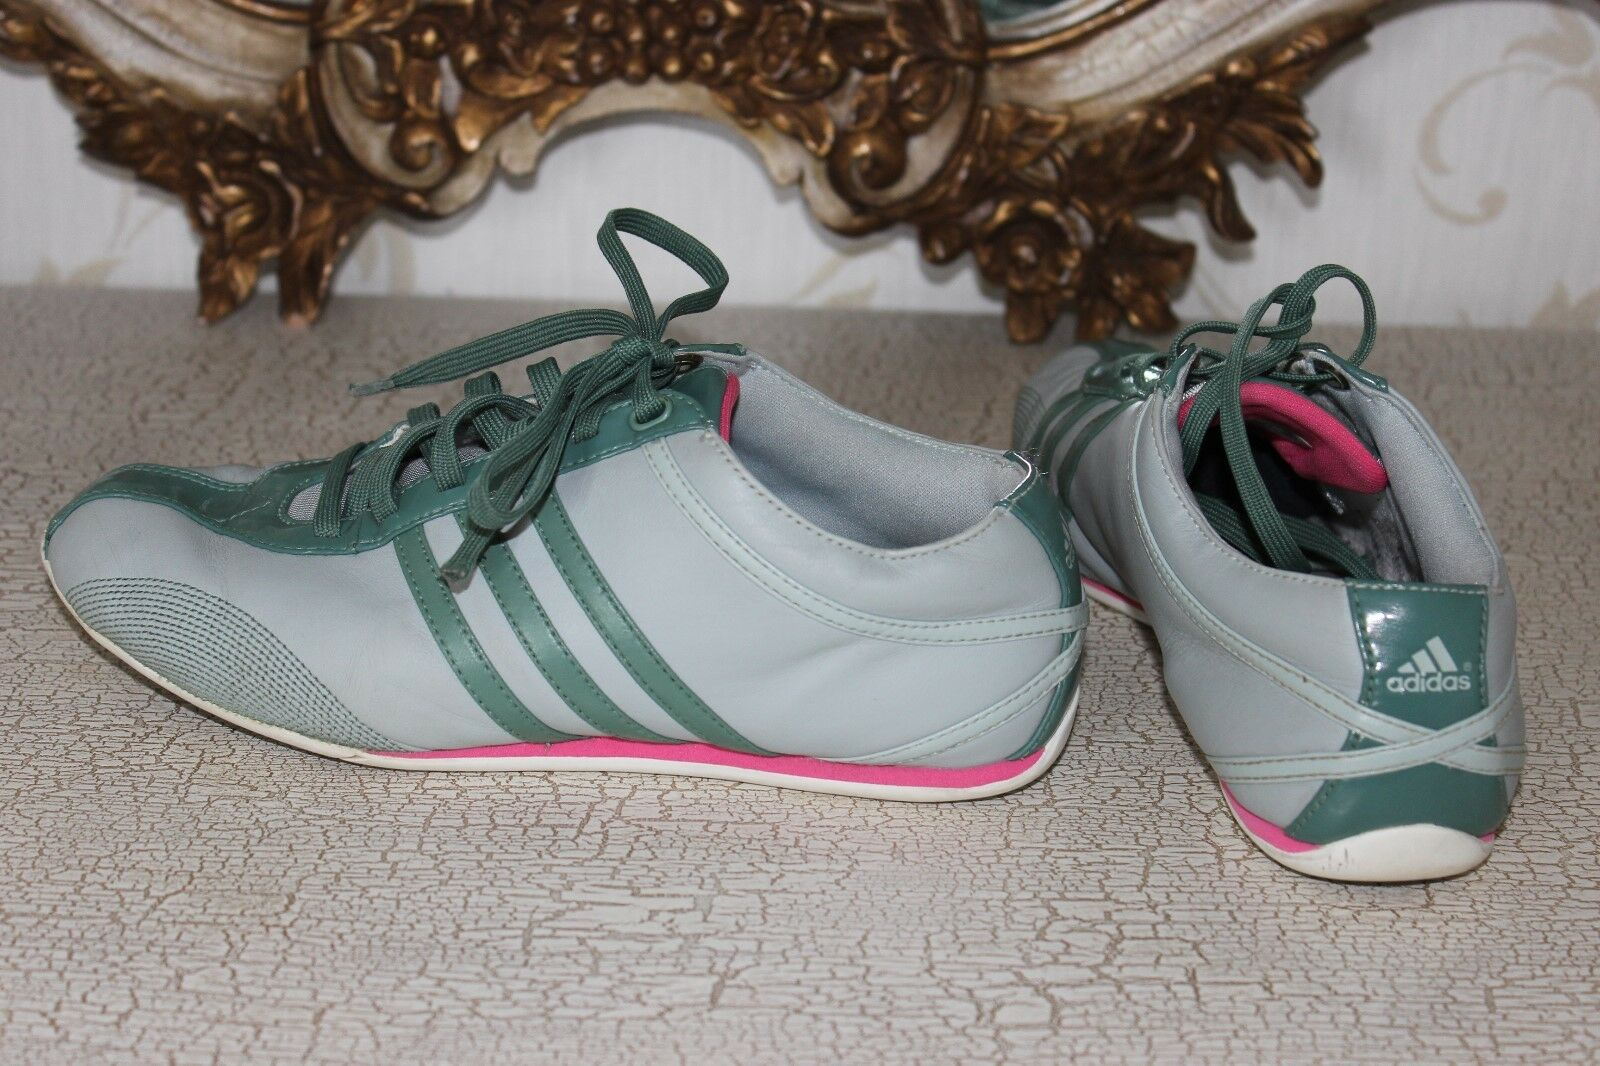 ADIDAS Light Grey & Green  Genuine Leather Ladies Training shoes Size 5